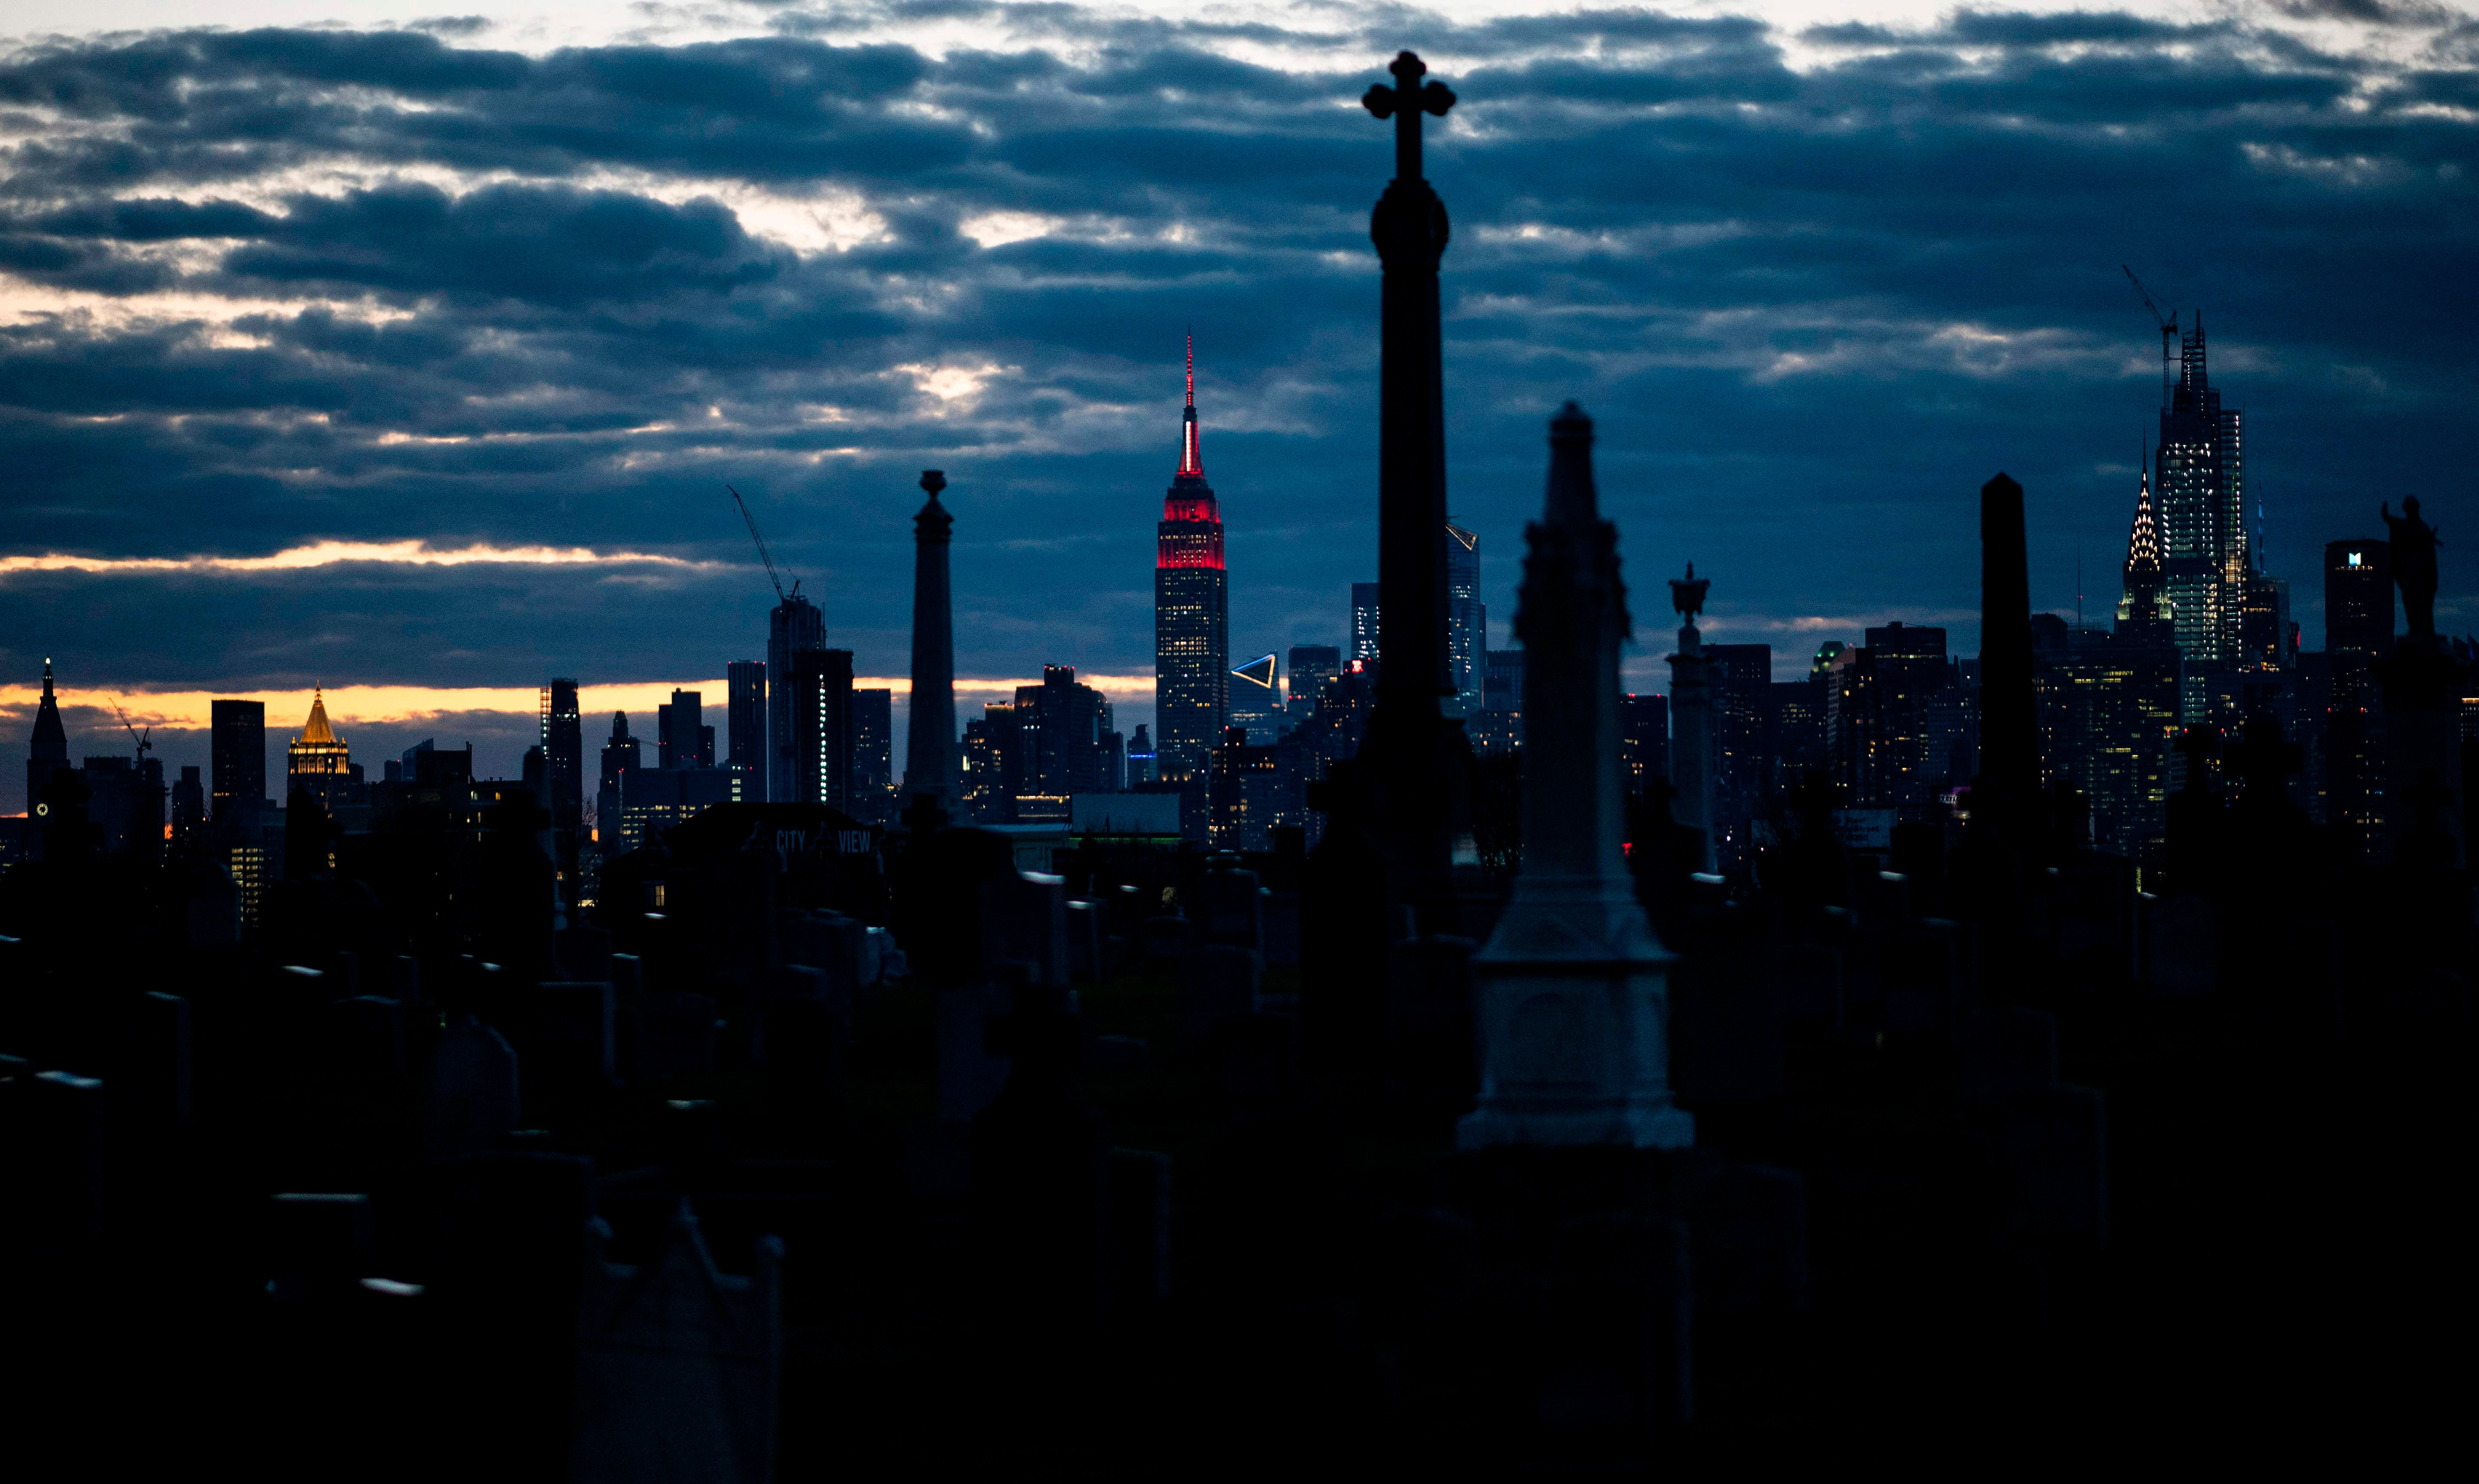 The Empire State Building, seen behind the Calvary Cemetery, is lit with a white and red 'siren' in its mast to pay tribute to medical workers battling the coronavirus outbreak on Wednesday, April 1, 2020 in New York City. (AFP Photo)